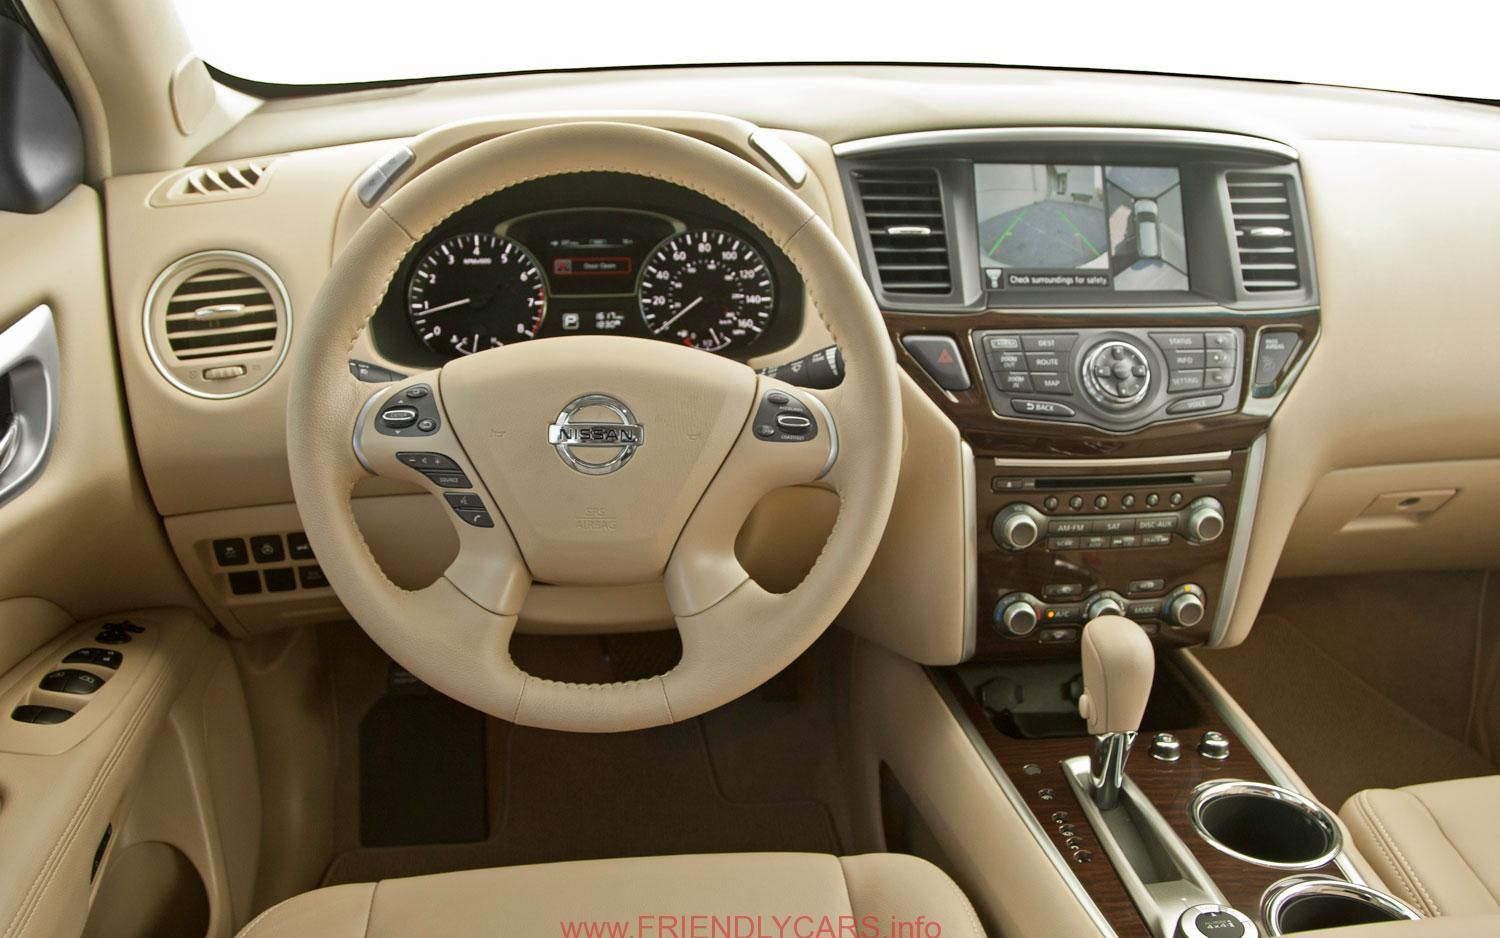 nissan pathfinder 2013 interior car images hd alifiah sites nissan pathfinder 2015 nissan pathfinder nissan nissan pathfinder 2013 interior car